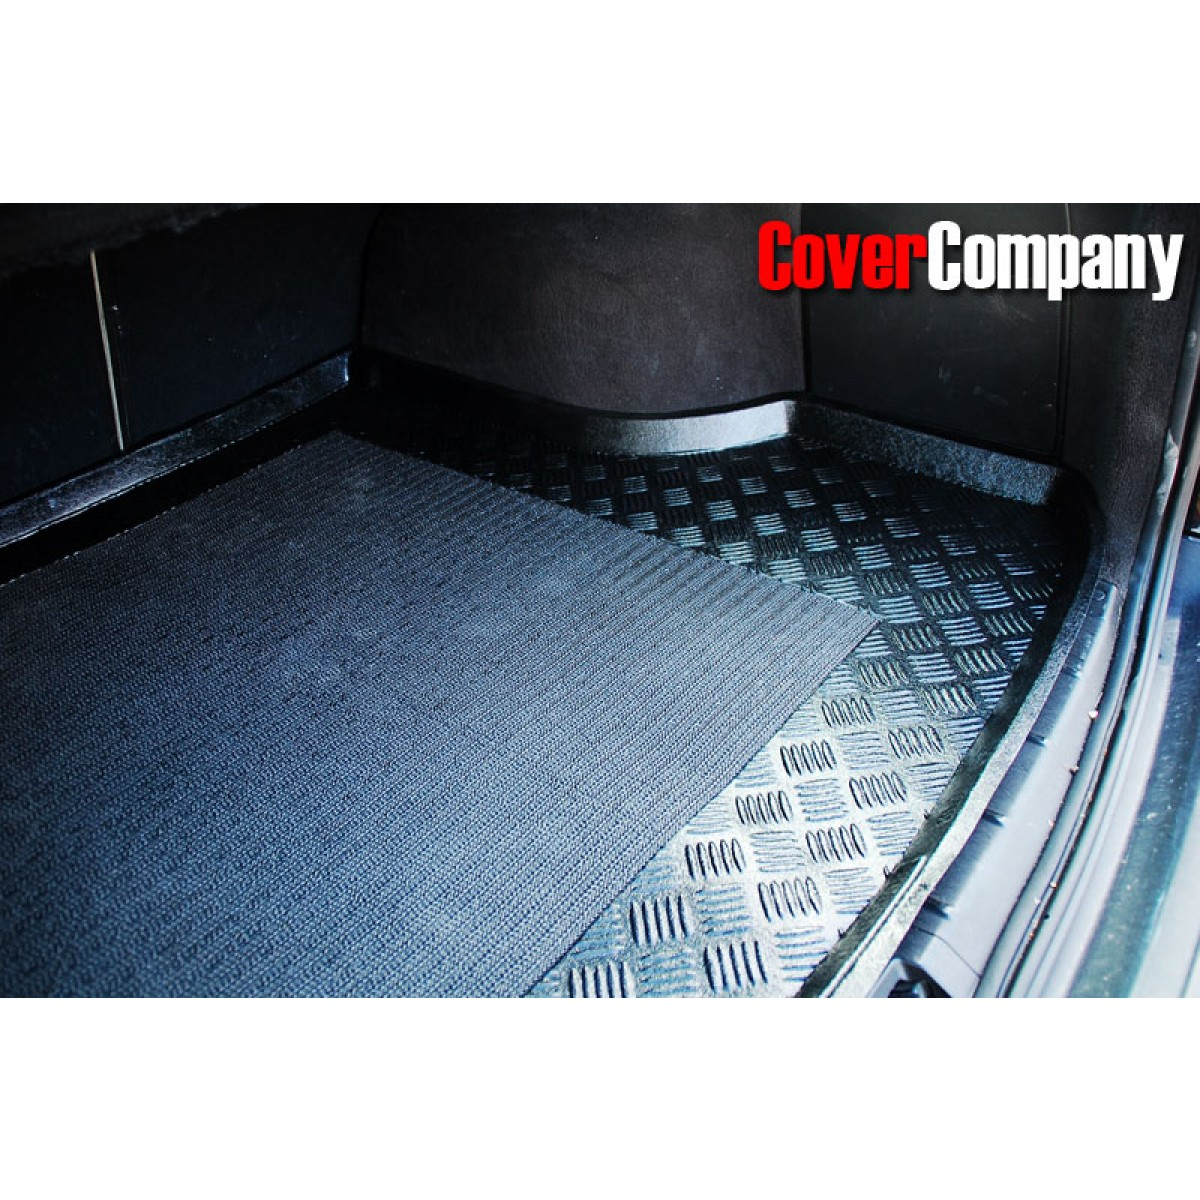 tapis coffre citroen sur mesure bienvenue sur cover company. Black Bedroom Furniture Sets. Home Design Ideas